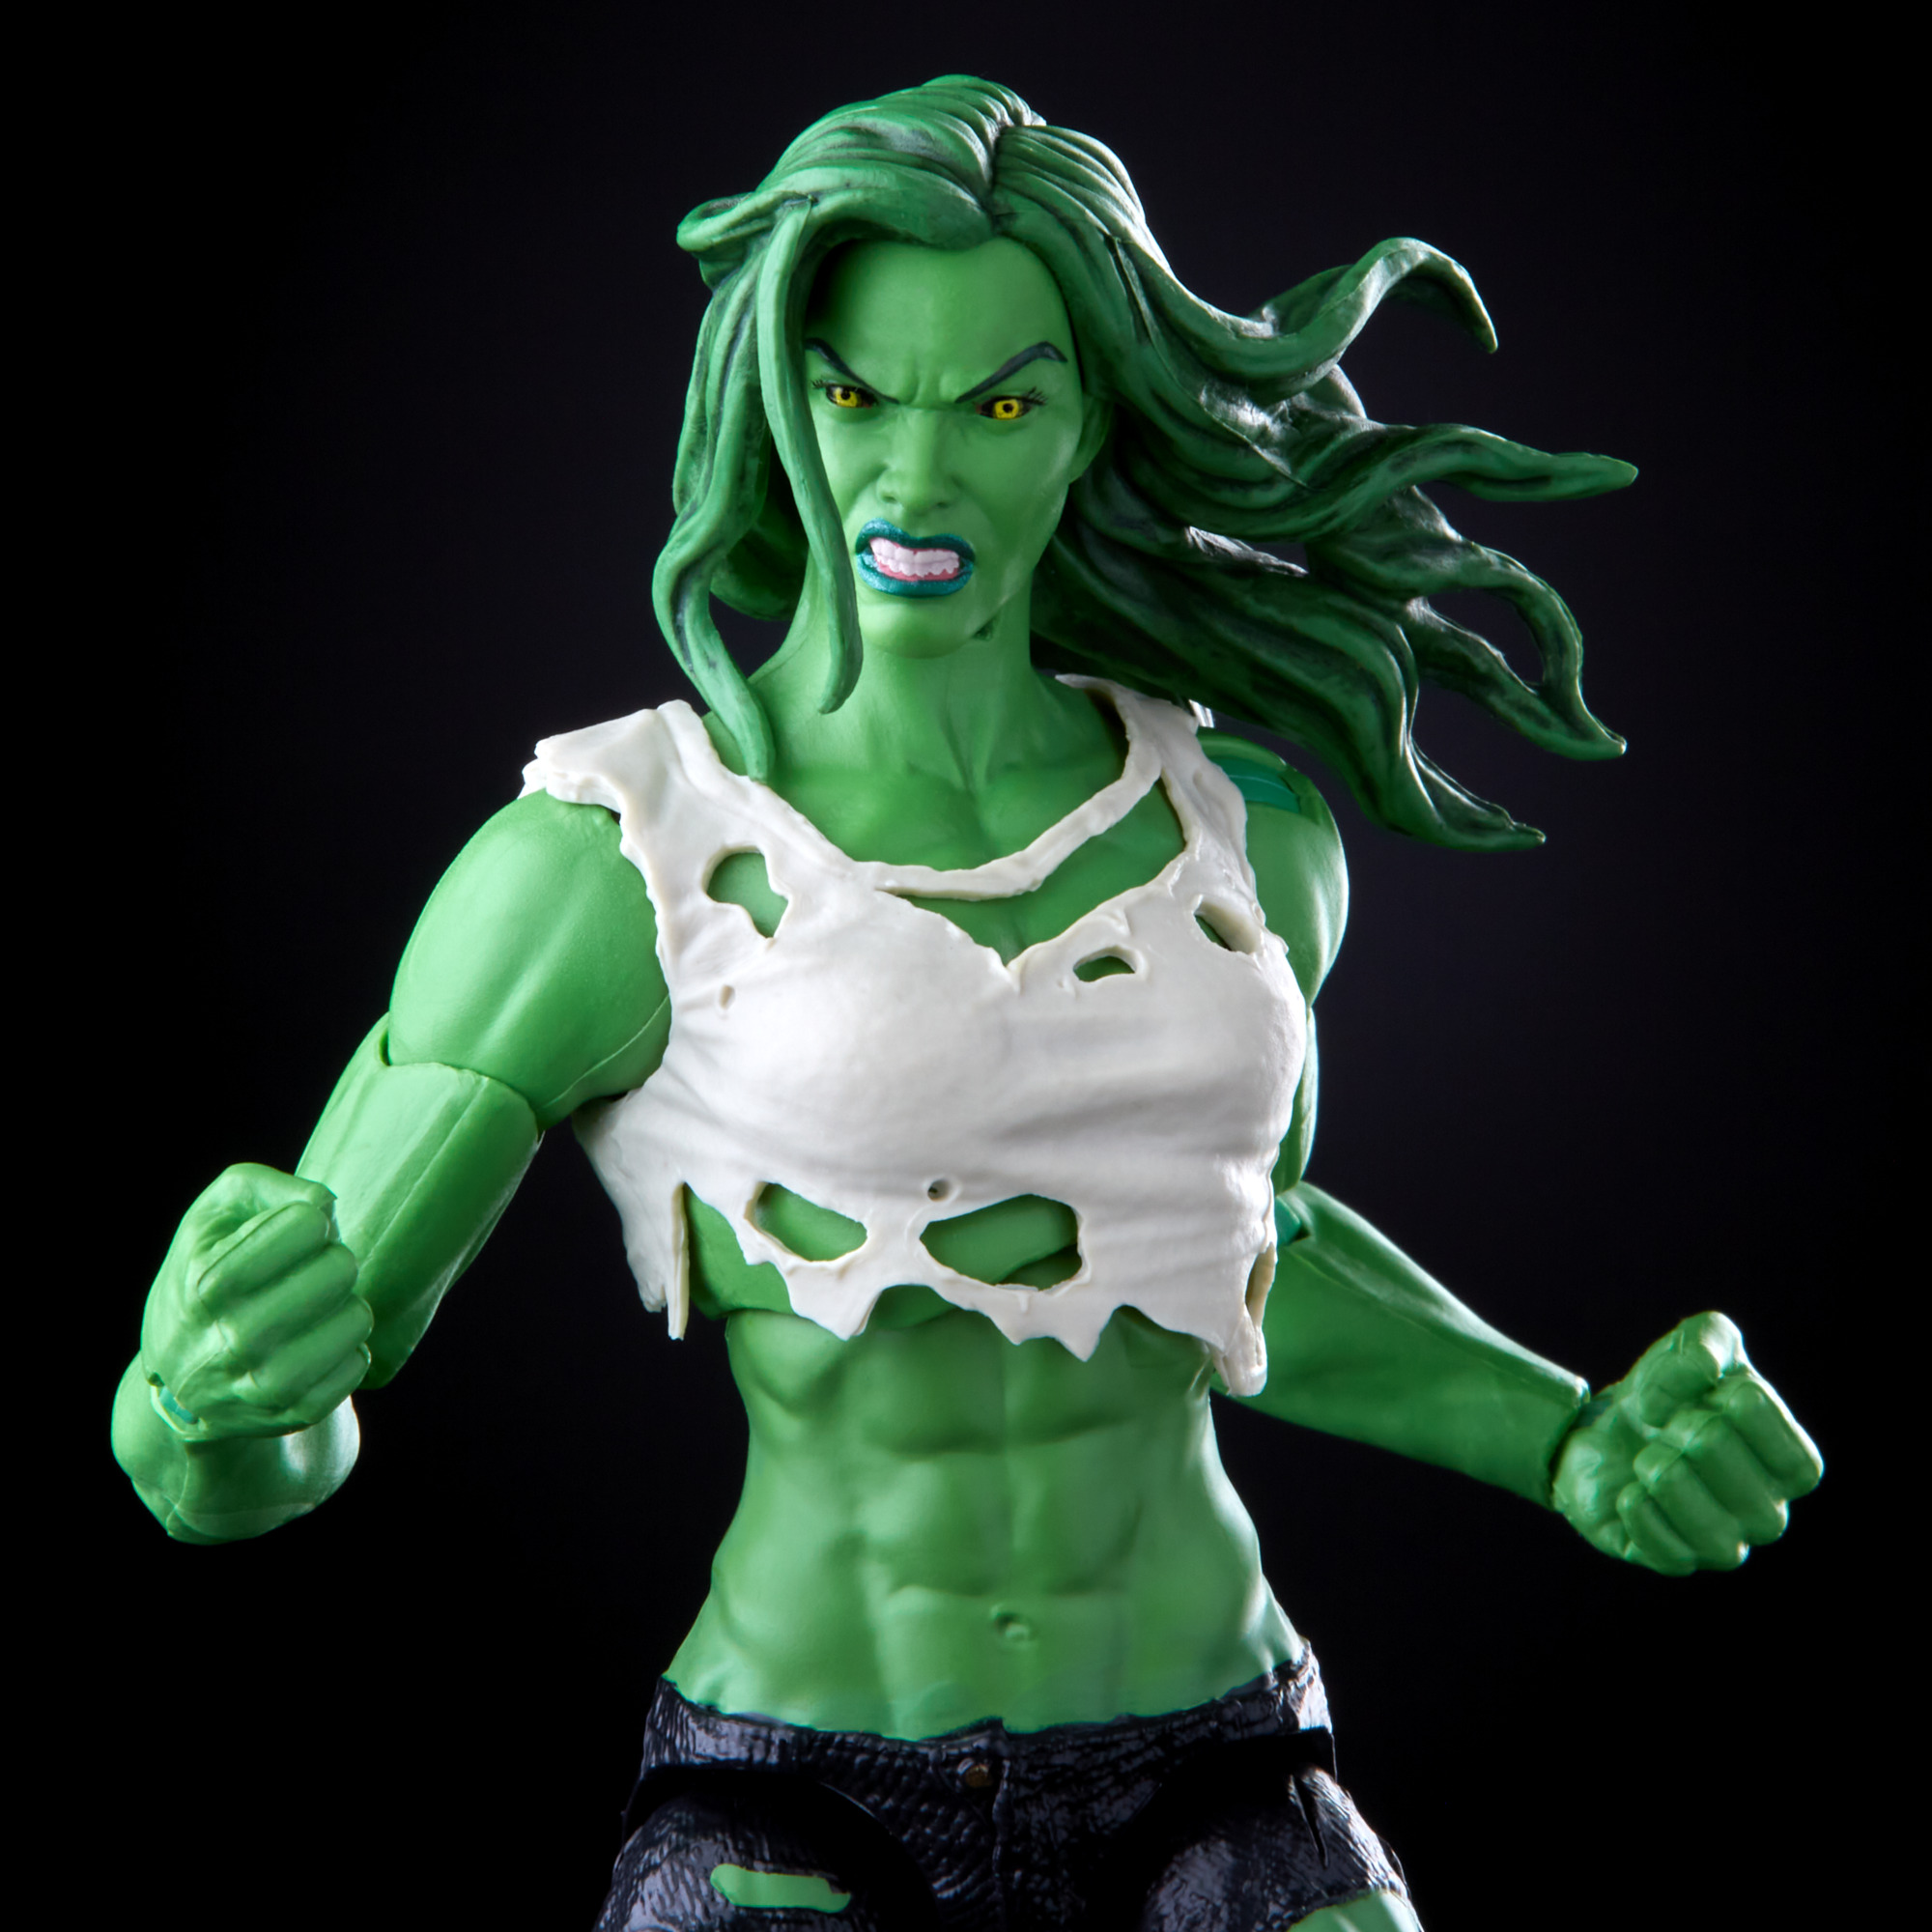 MARVEL LEGENDS SERIES 6 INCH SHE HULK Figure oop 5